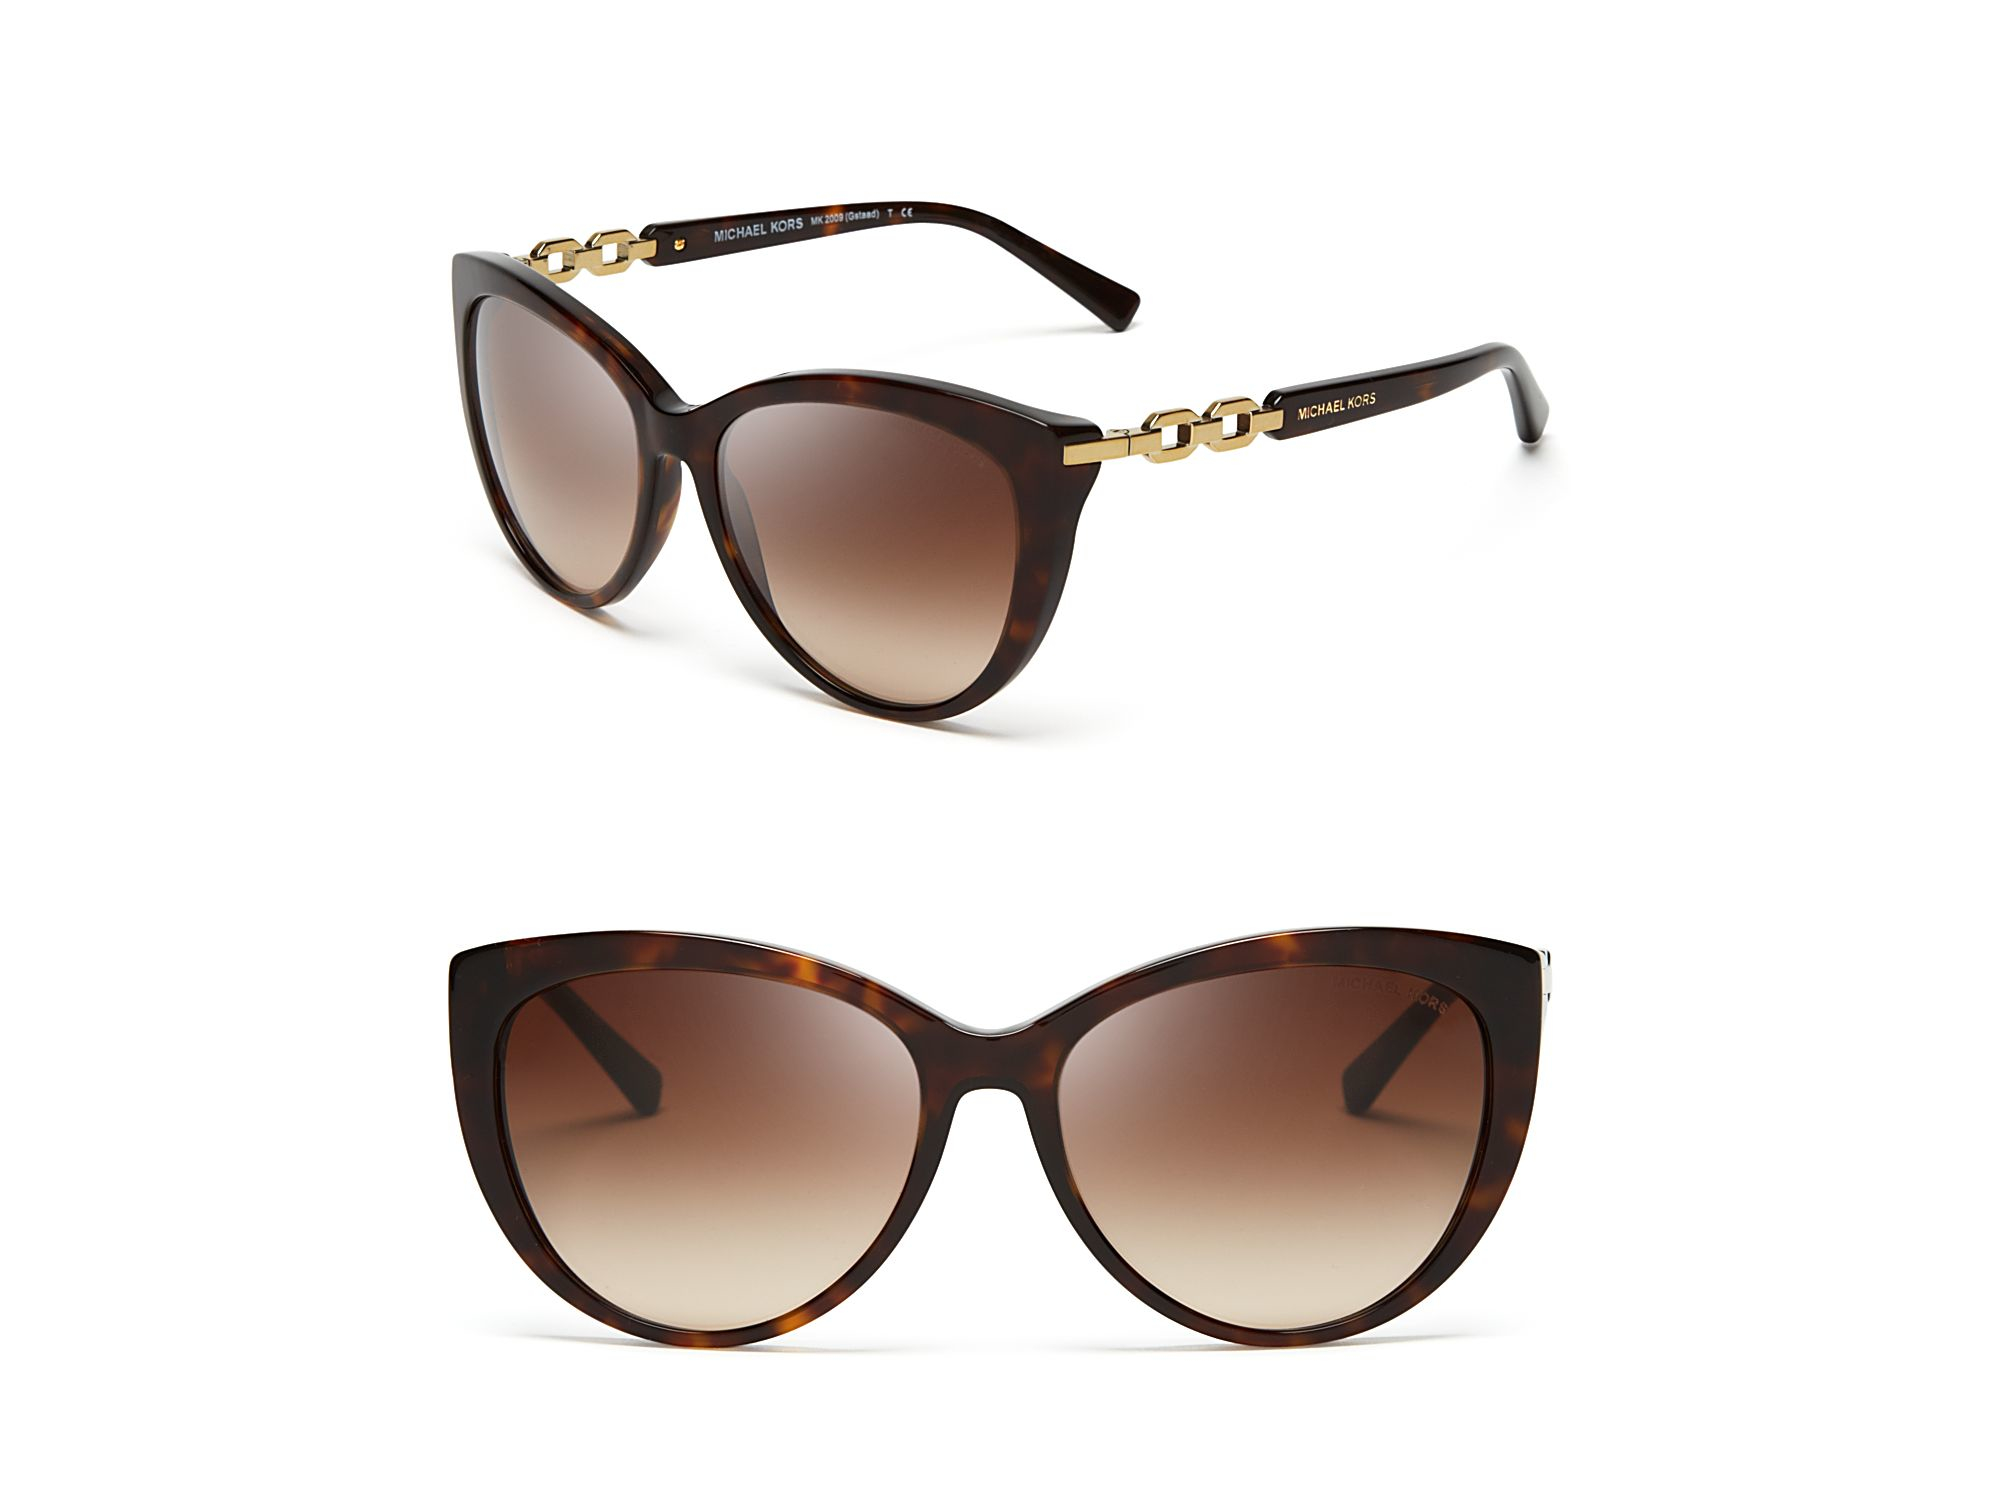 Lyst - Michael Kors Gstaad Chainlink Cat Eye Sunglasses in Brown